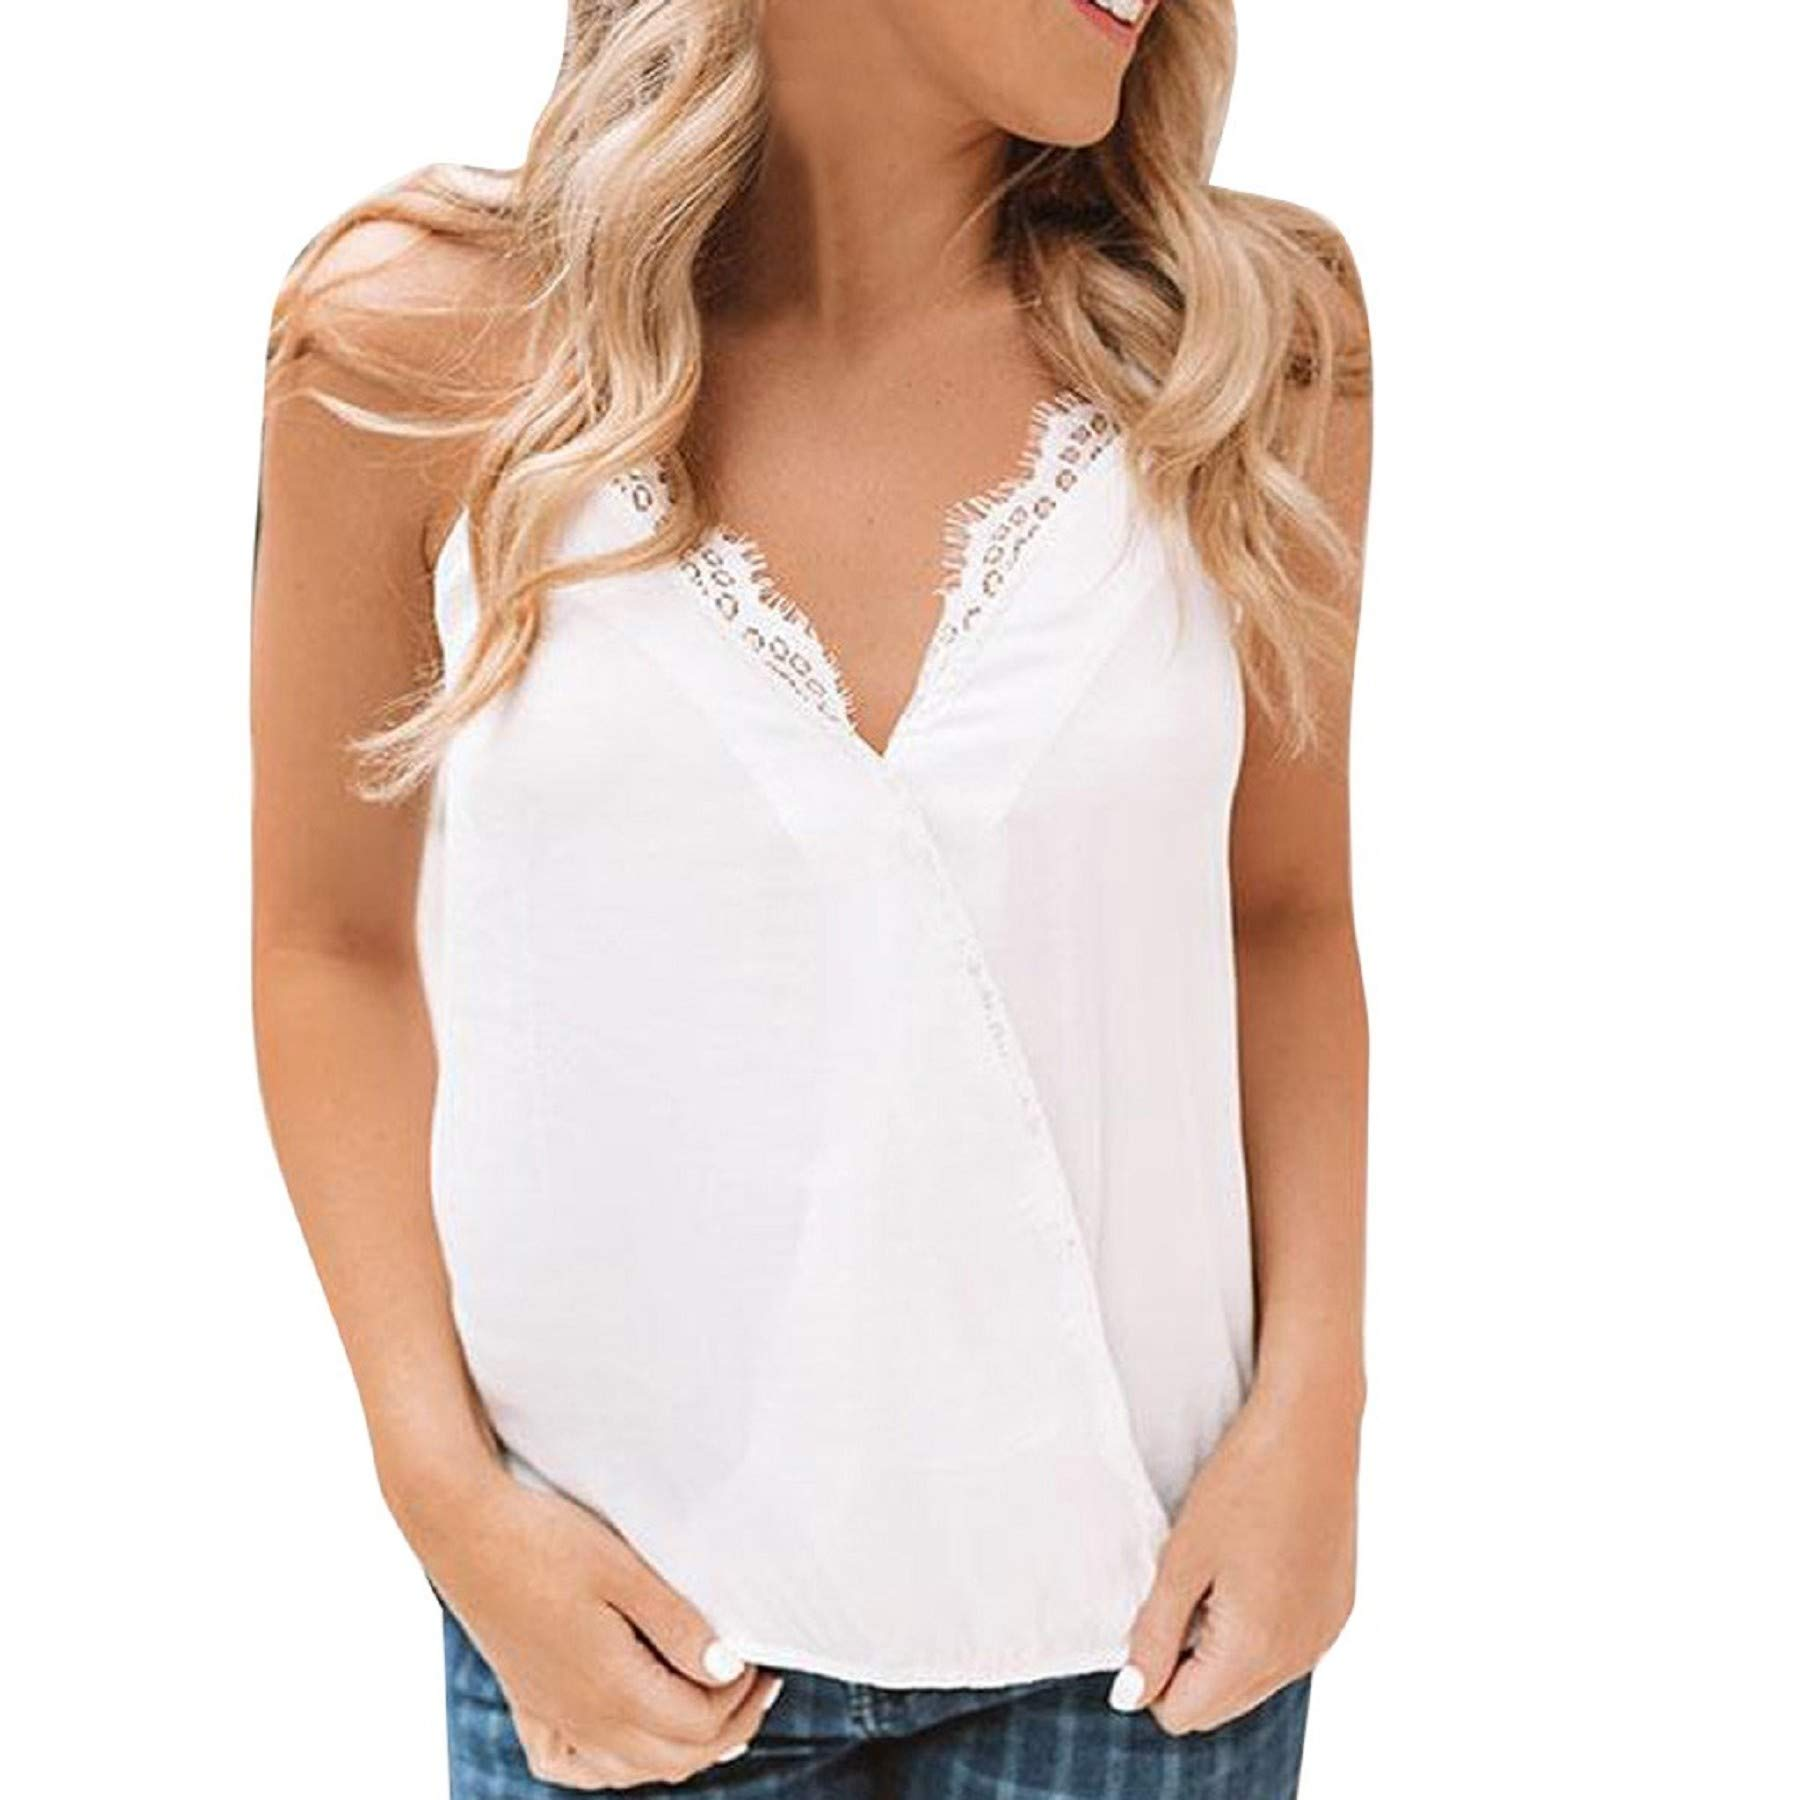 Women Summer Sleeveless Lace Wrap Camisole Top Plain Strappy Vest Top Blouse Casual V Neck Tank Top White